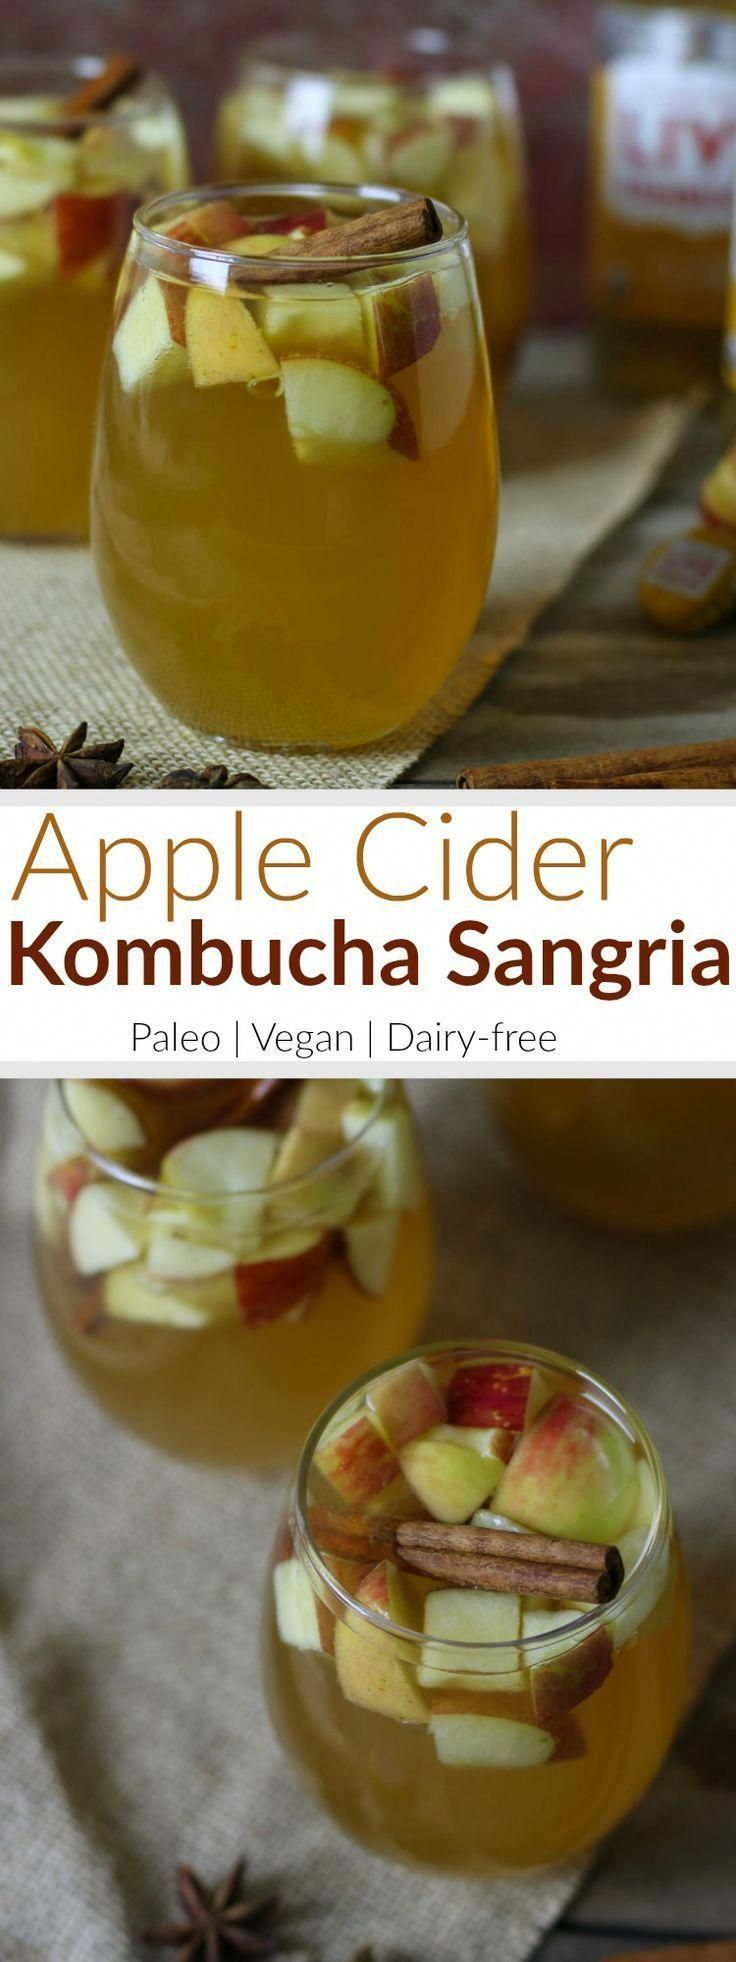 Apple Cider Kombucha Sangria | healthy sangria recipes | fall inspired drinks | apple cider flavored drinks | healthy cocktail recipes | kombucha recipe ideas | paleo drink recipes | dairy free drink recipes | vegan drink recipes || The Real Food Dietitians #paleo #vegan #dairyfree #healthyfalldrink #paleodrink #appleciderdrink #cocktailrecipesideas #applecidersangriarecipe Apple Cider Kombucha Sangria | healthy sangria recipes | fall inspired drinks | apple cider flavored drinks | healthy cockt #applecidersangriarecipe